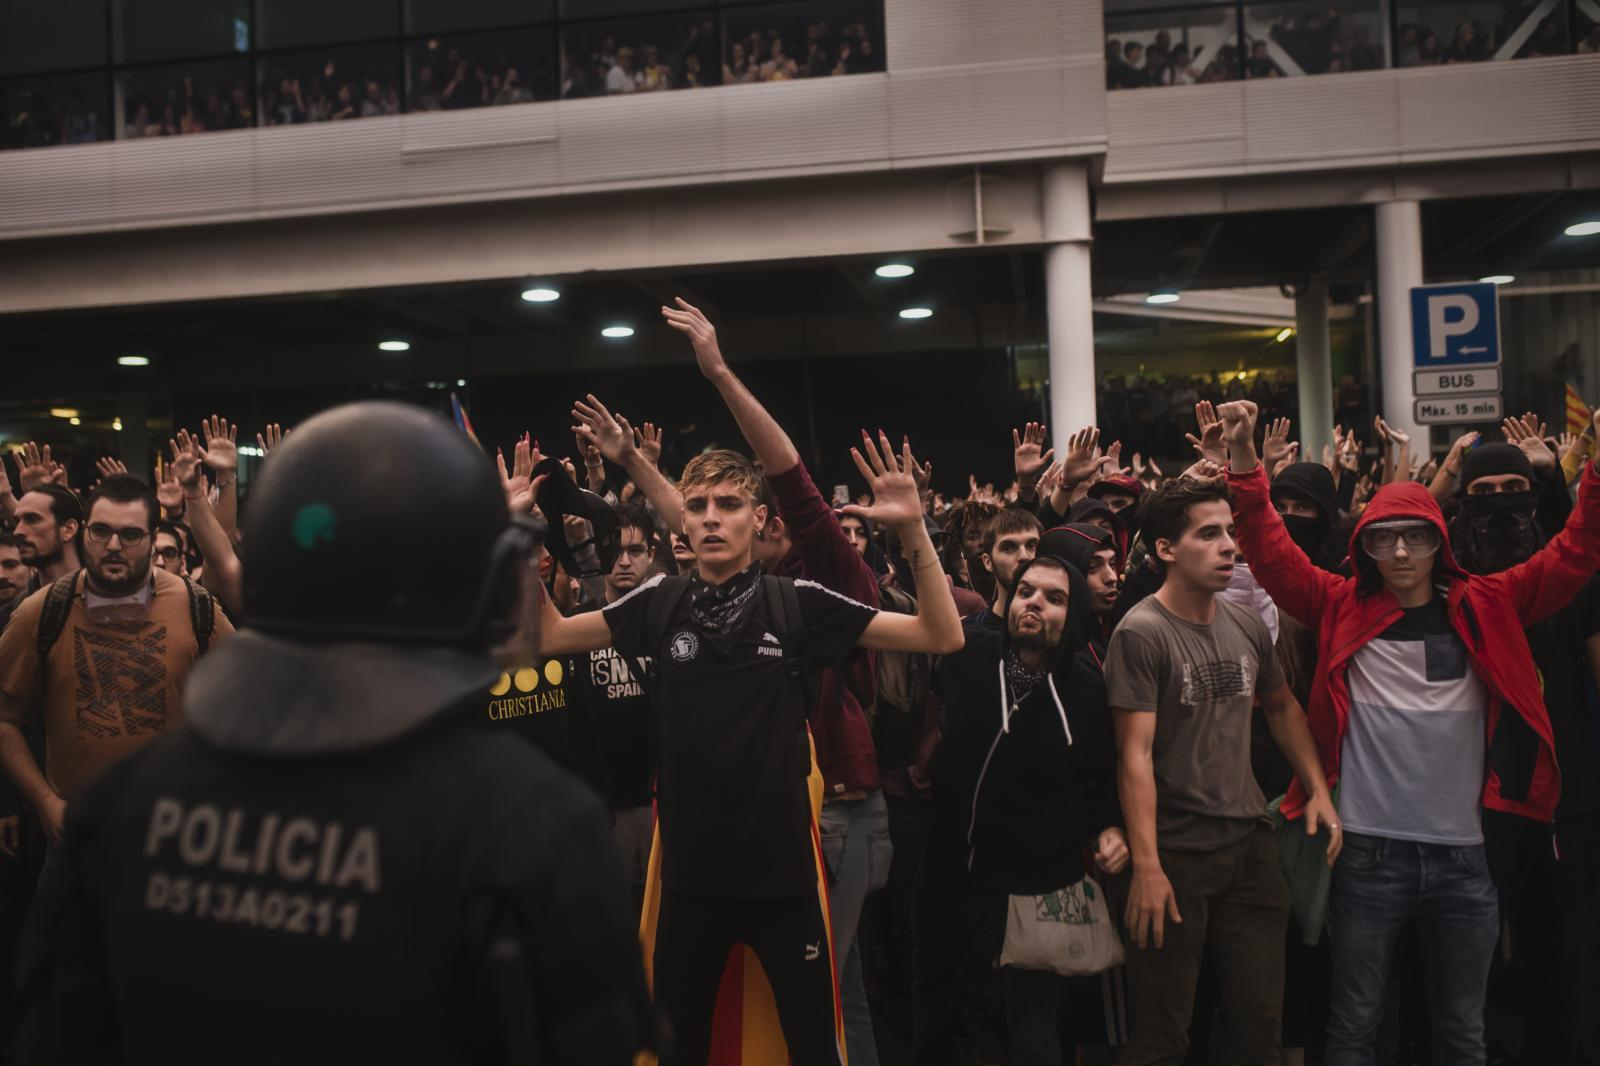 Protesters occupy the airport. More than 150 flights were canceled, and several others were delayed as activists clashed with police. Apart from jailing the nine separatist leaders, the court also issued a European arrest warrant for former regional president Carles Puigdemont who managed to evade Spanish authorities after the failed 2017 independence bid and now lives in exile in Belgium. Madrid had previously sought his extradition but dropped the arrest warrant in mid-2018 after Germany refused to hand him over. (October 14,2019. Barcelona, Spain)